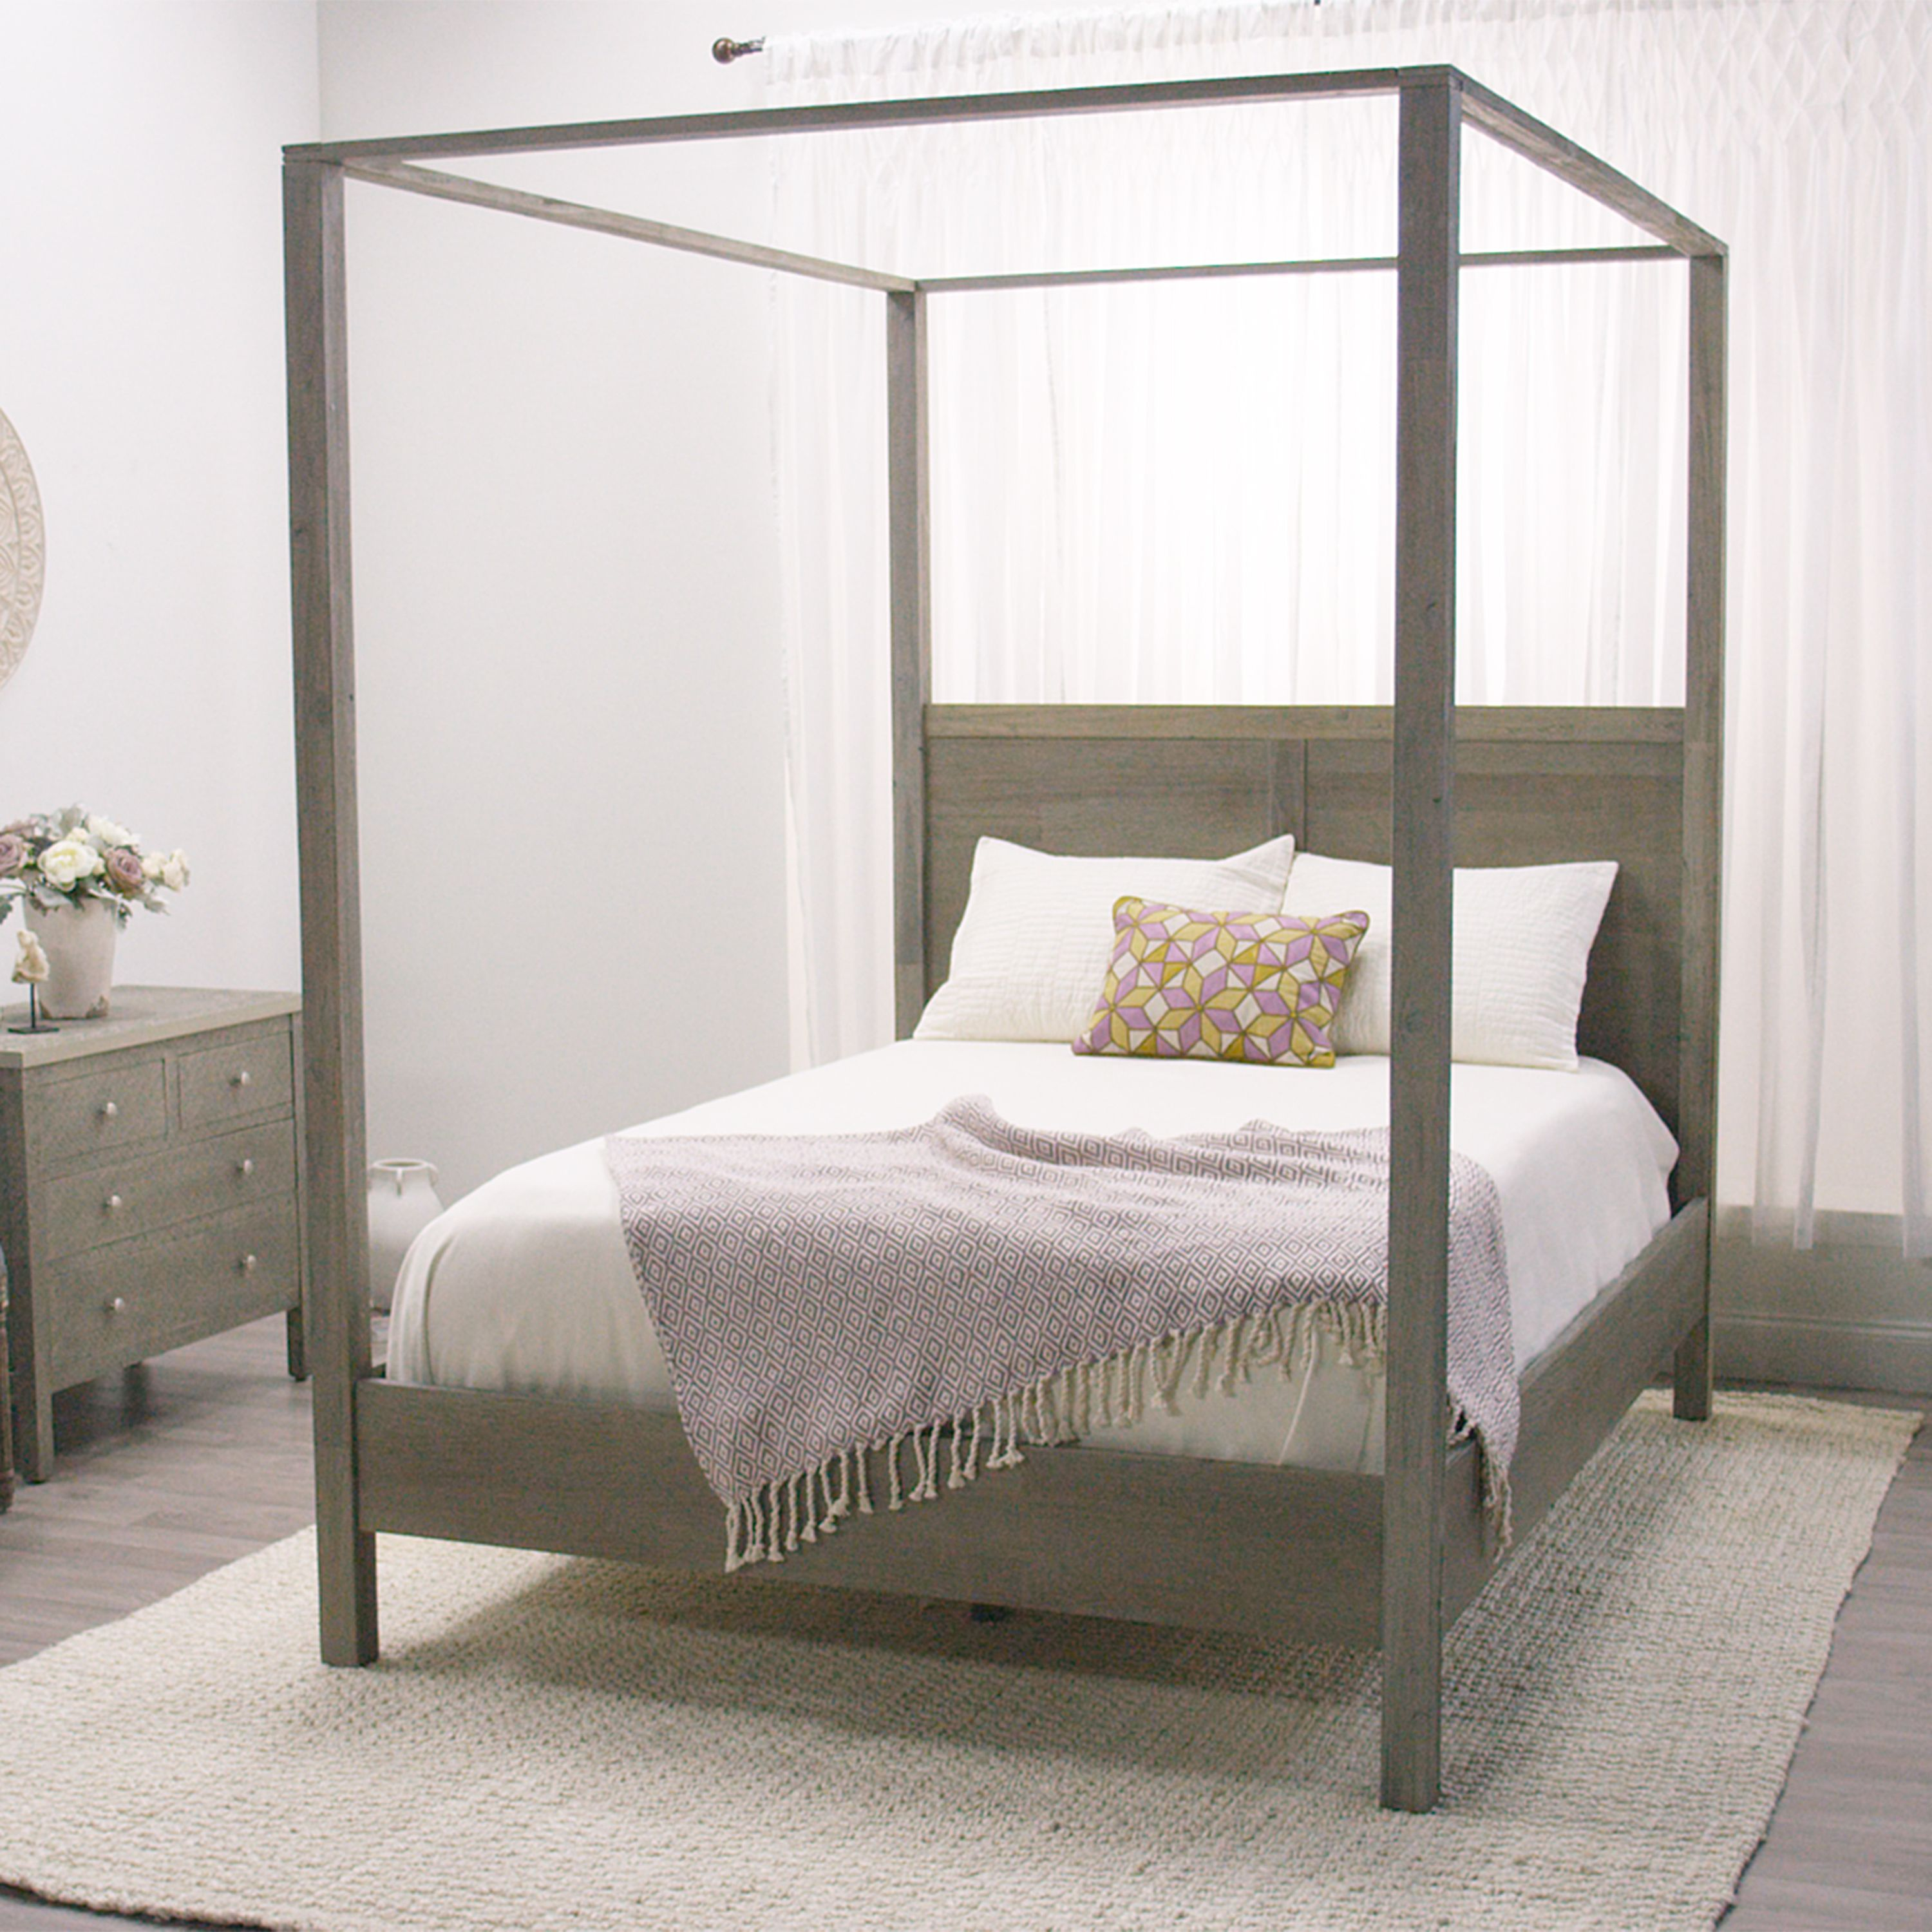 Canopy Bedroom Sets Girls in a simple, clean-lined silhouette with a weathered gray finish